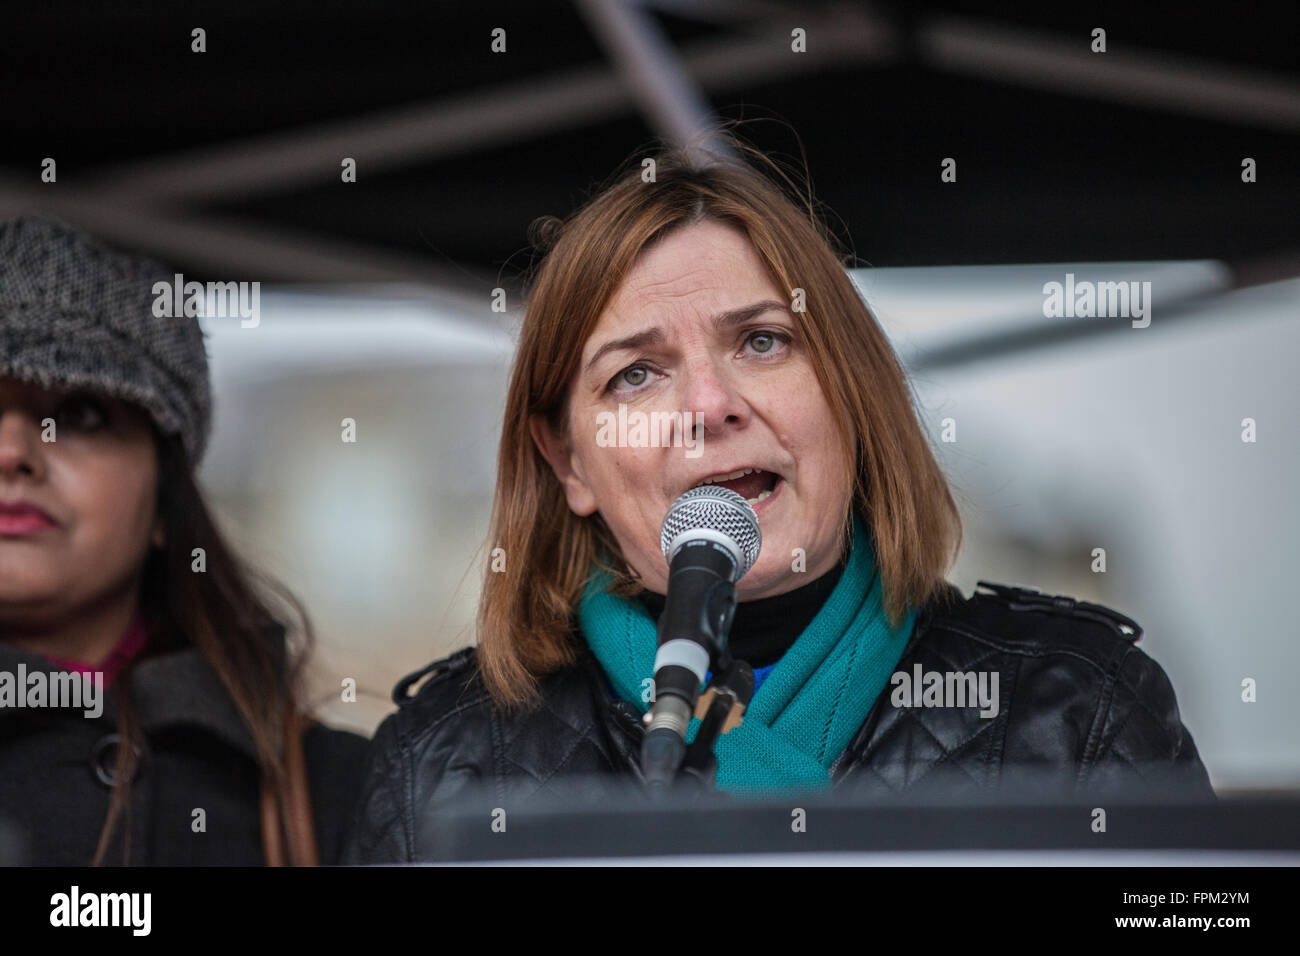 London, UK. 19th March, 2016. Sally Hunt, General Secretary of the University and College Union, addresses thousands - Stock Image